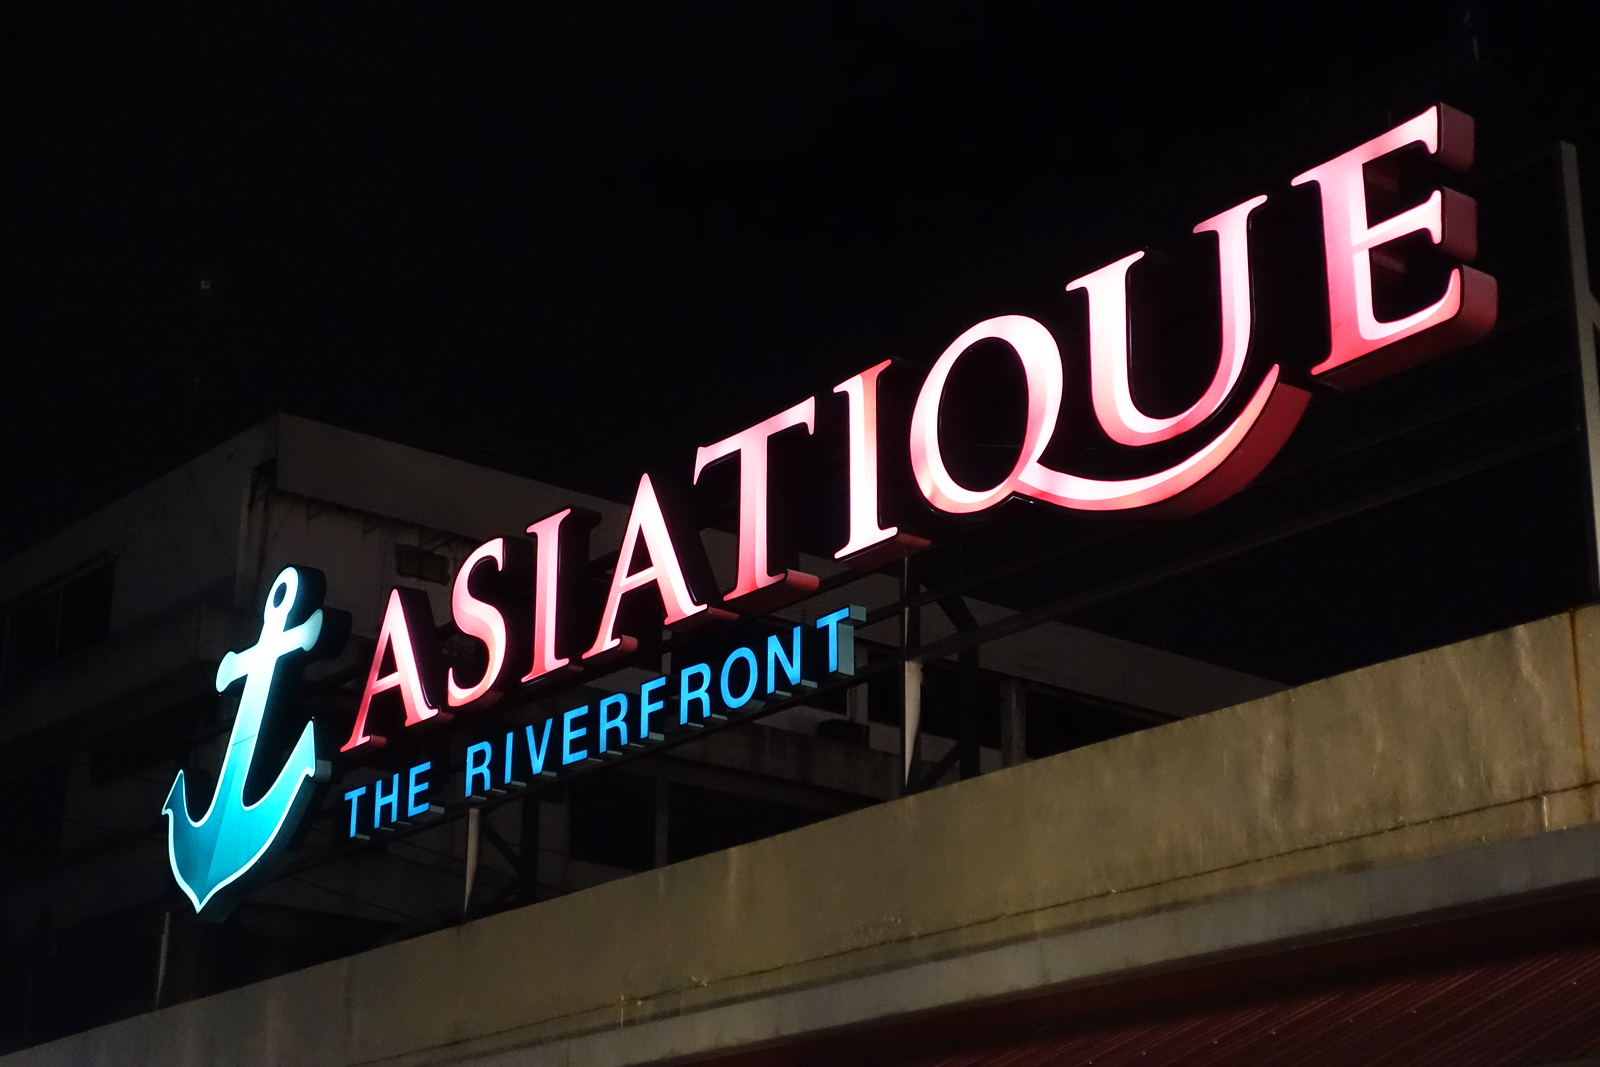 One Night at Asiatique The Riverfront